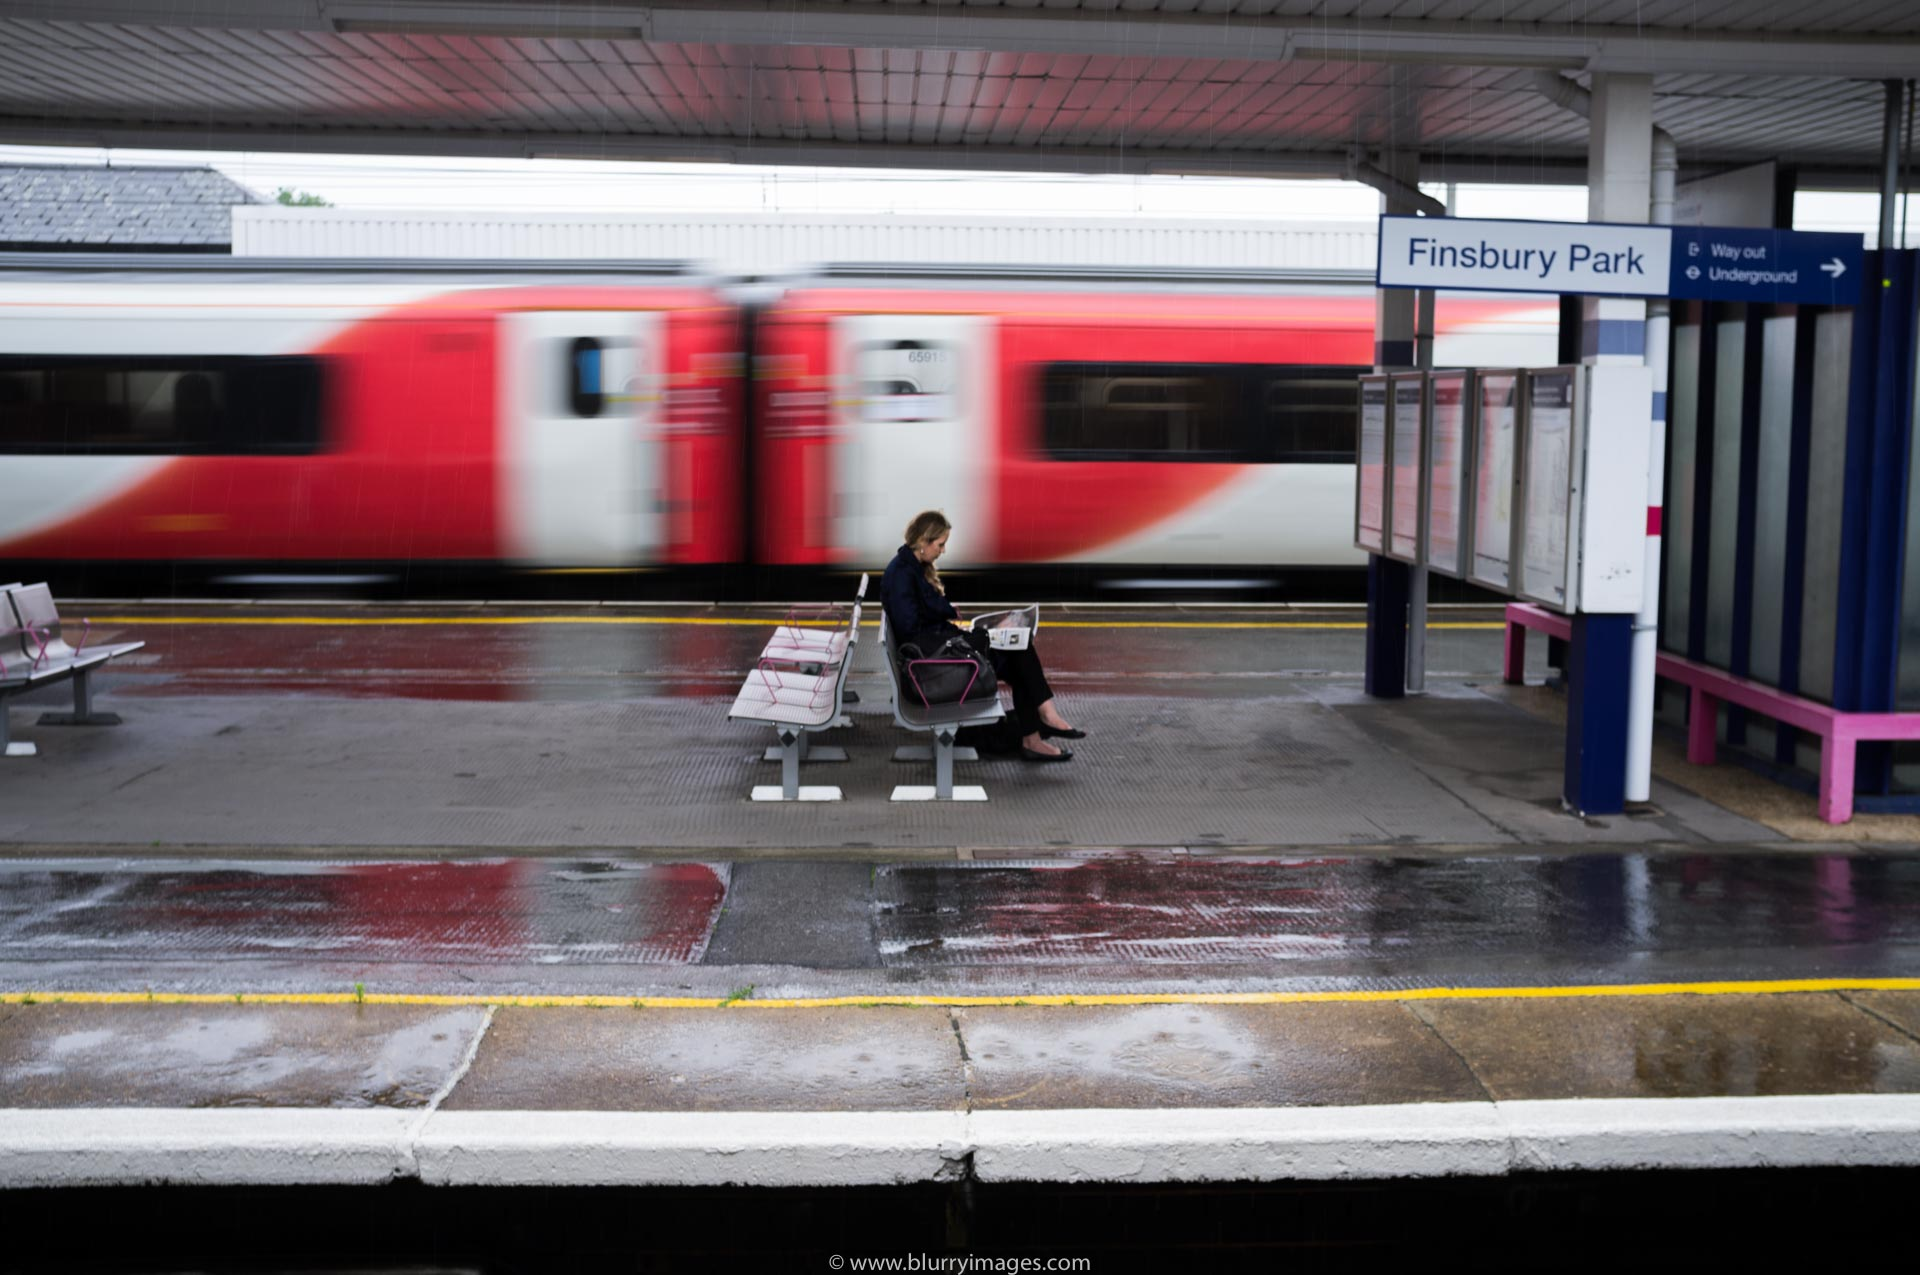 Brexit in UK, woman reading newspaper, train station, train, Brexit 2016 in pictures, Brexit referendum